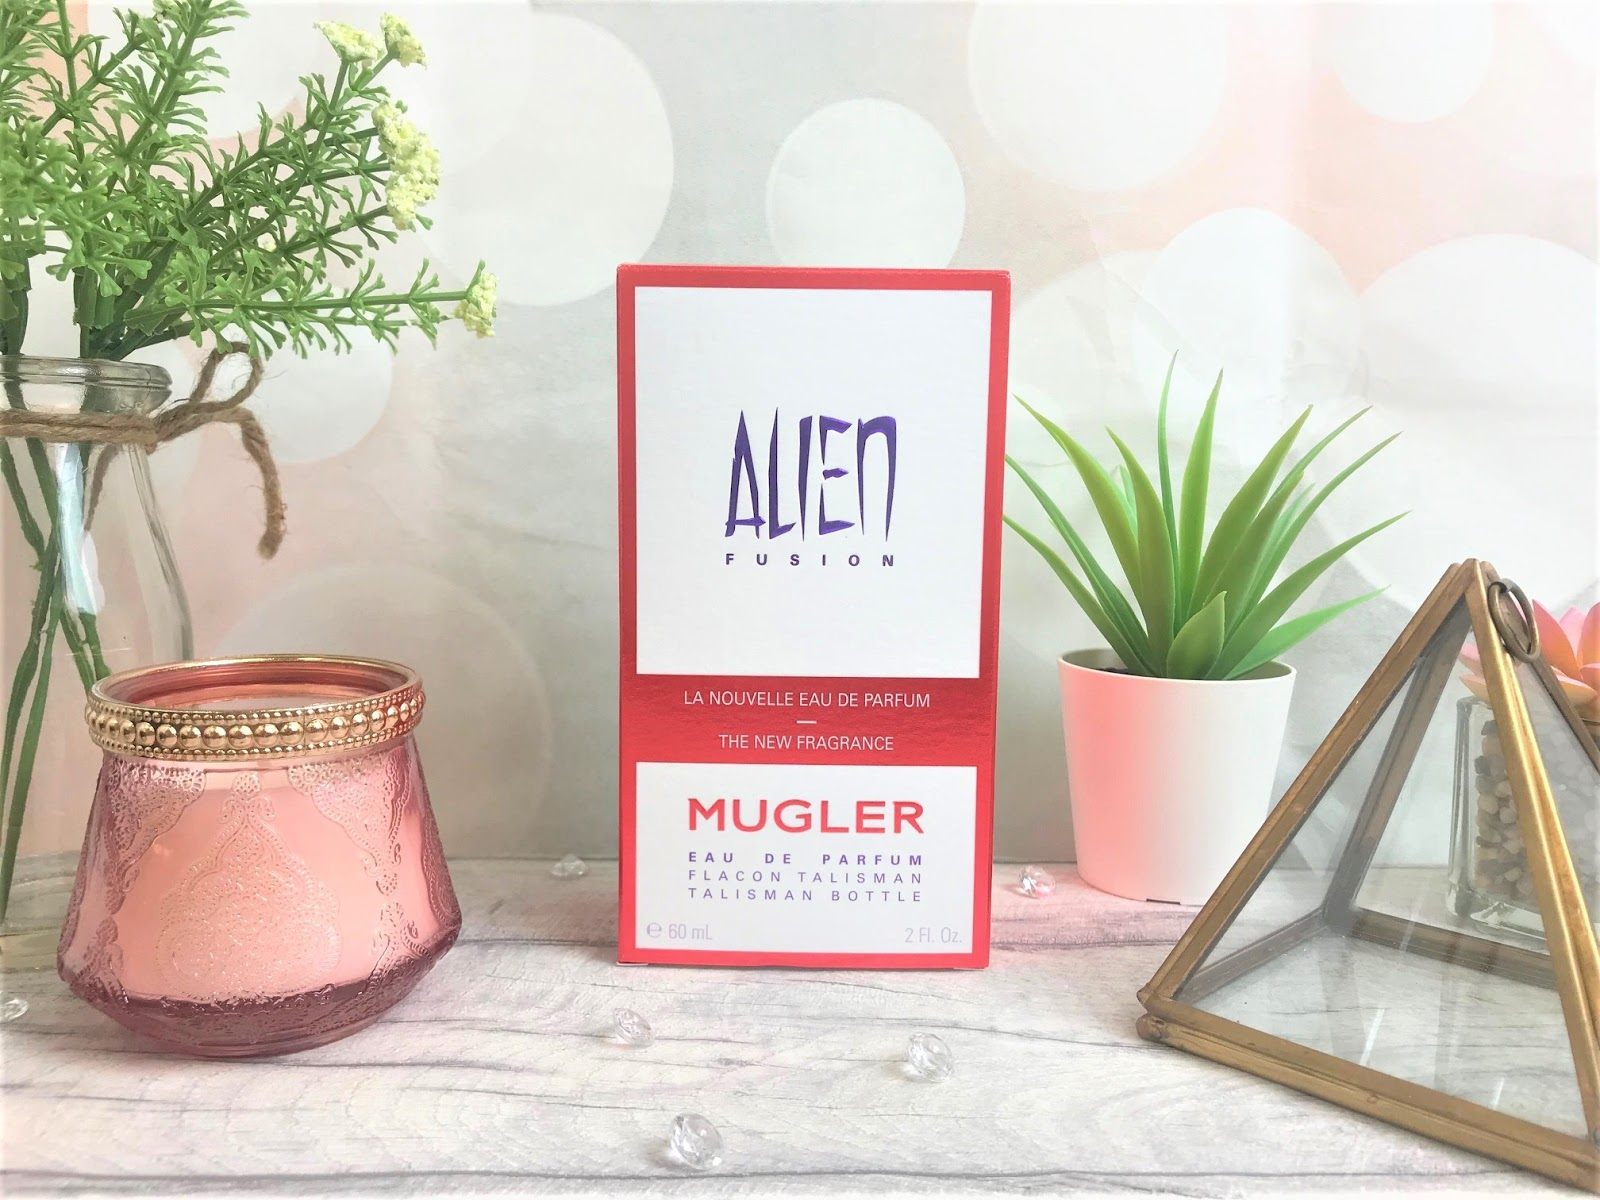 Kathryns Loves Thierry Muglers Alien Fusion Eau De Parfum Review